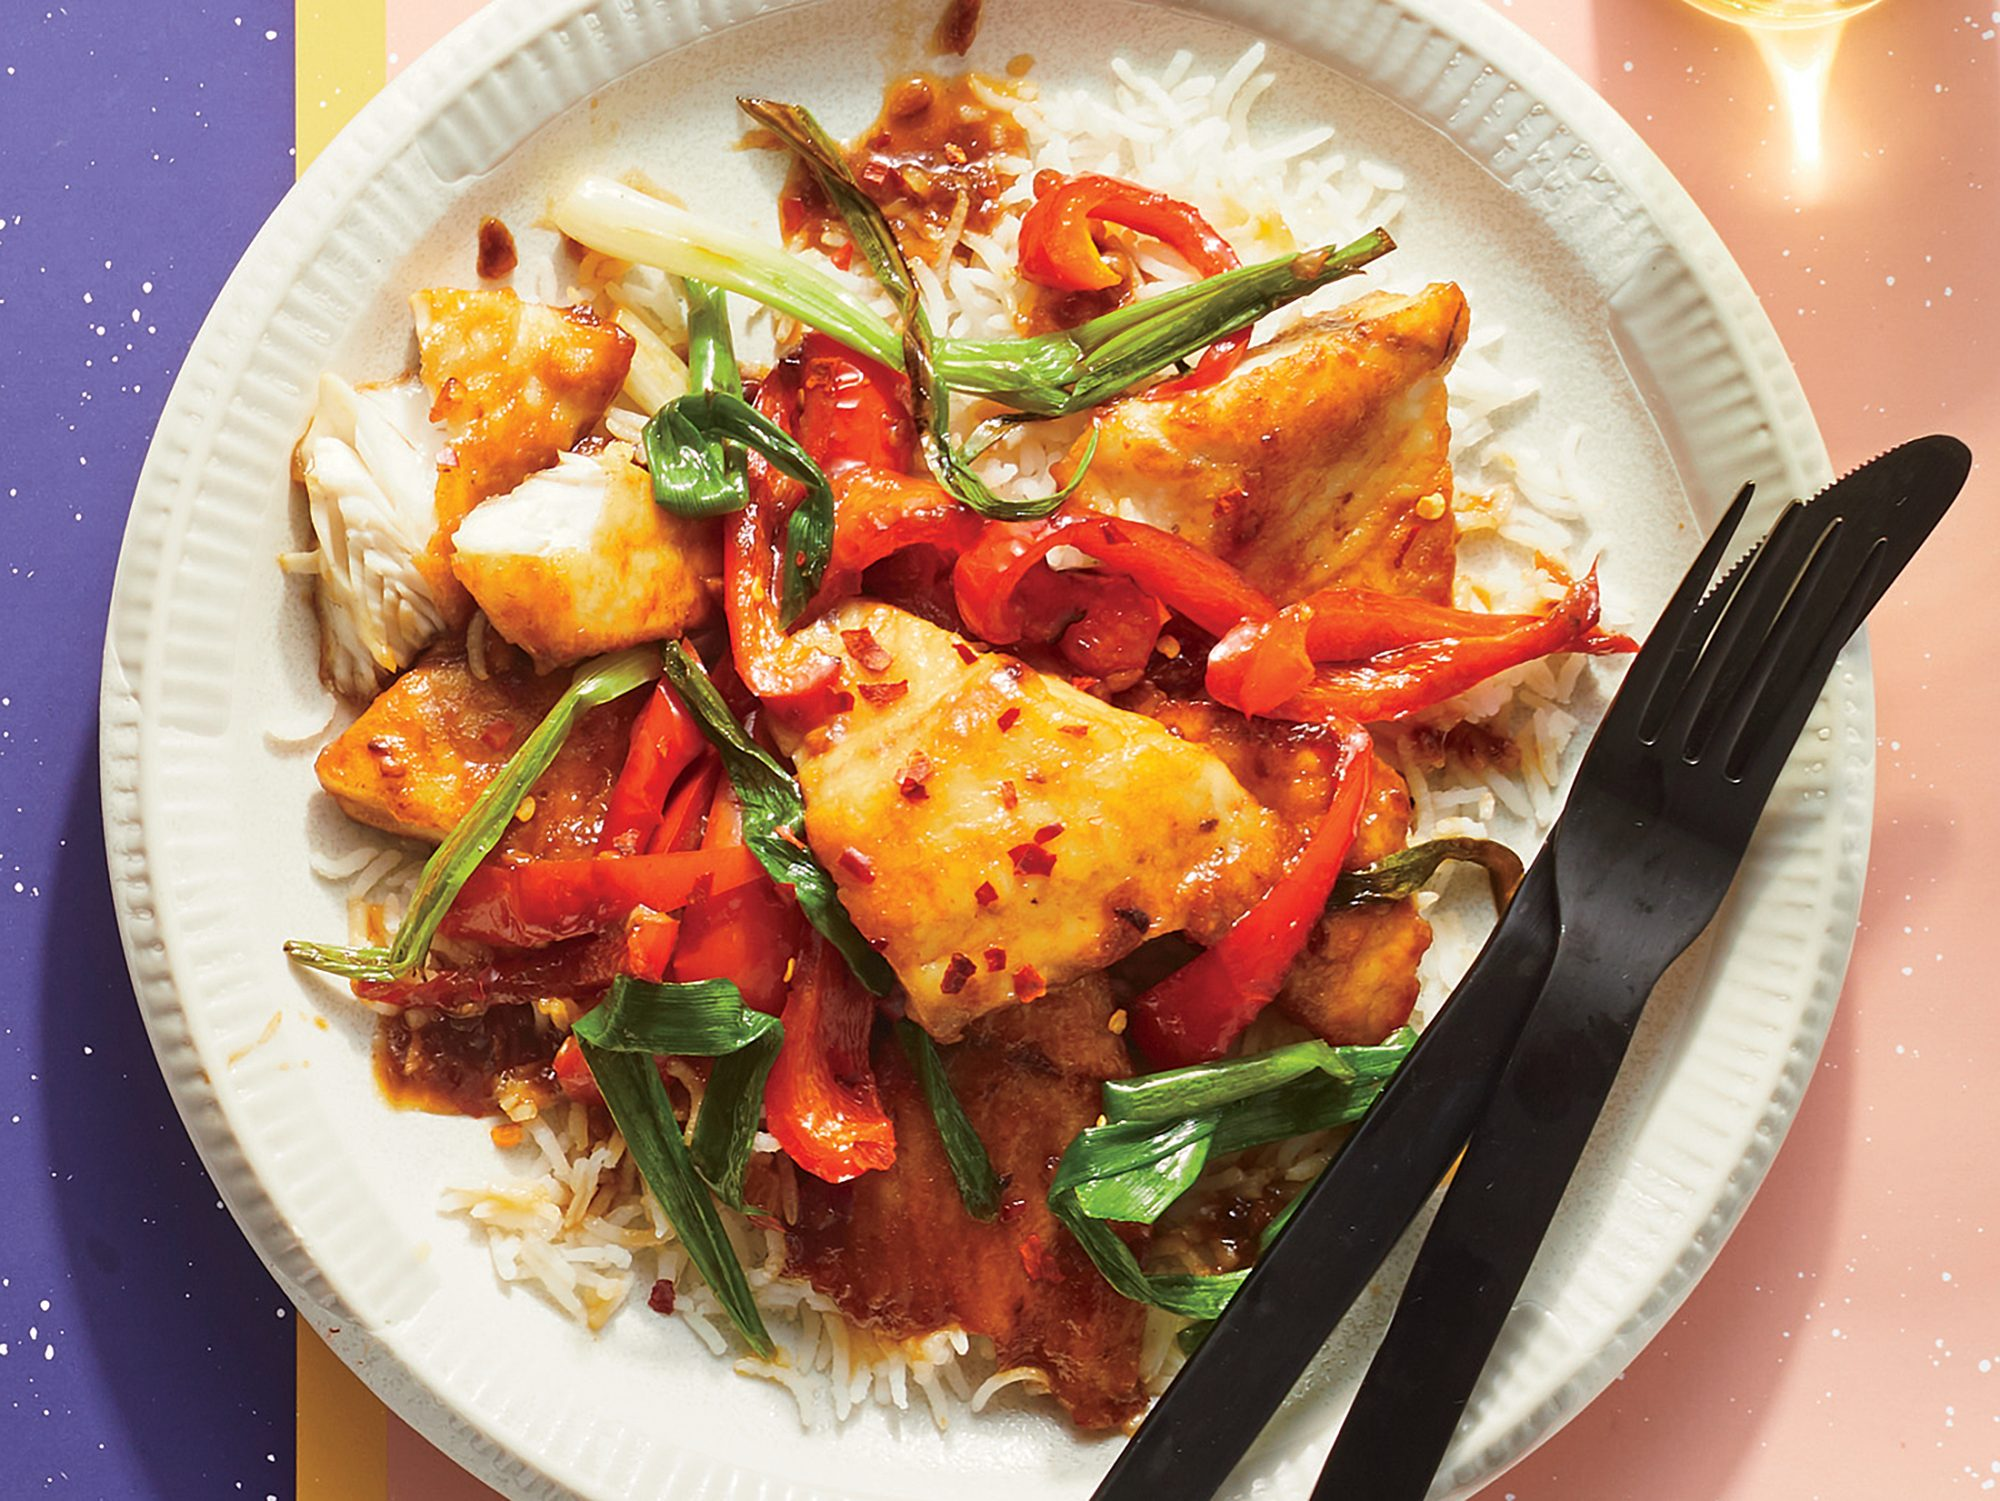 Crispy Fish with Scallions and Peppers